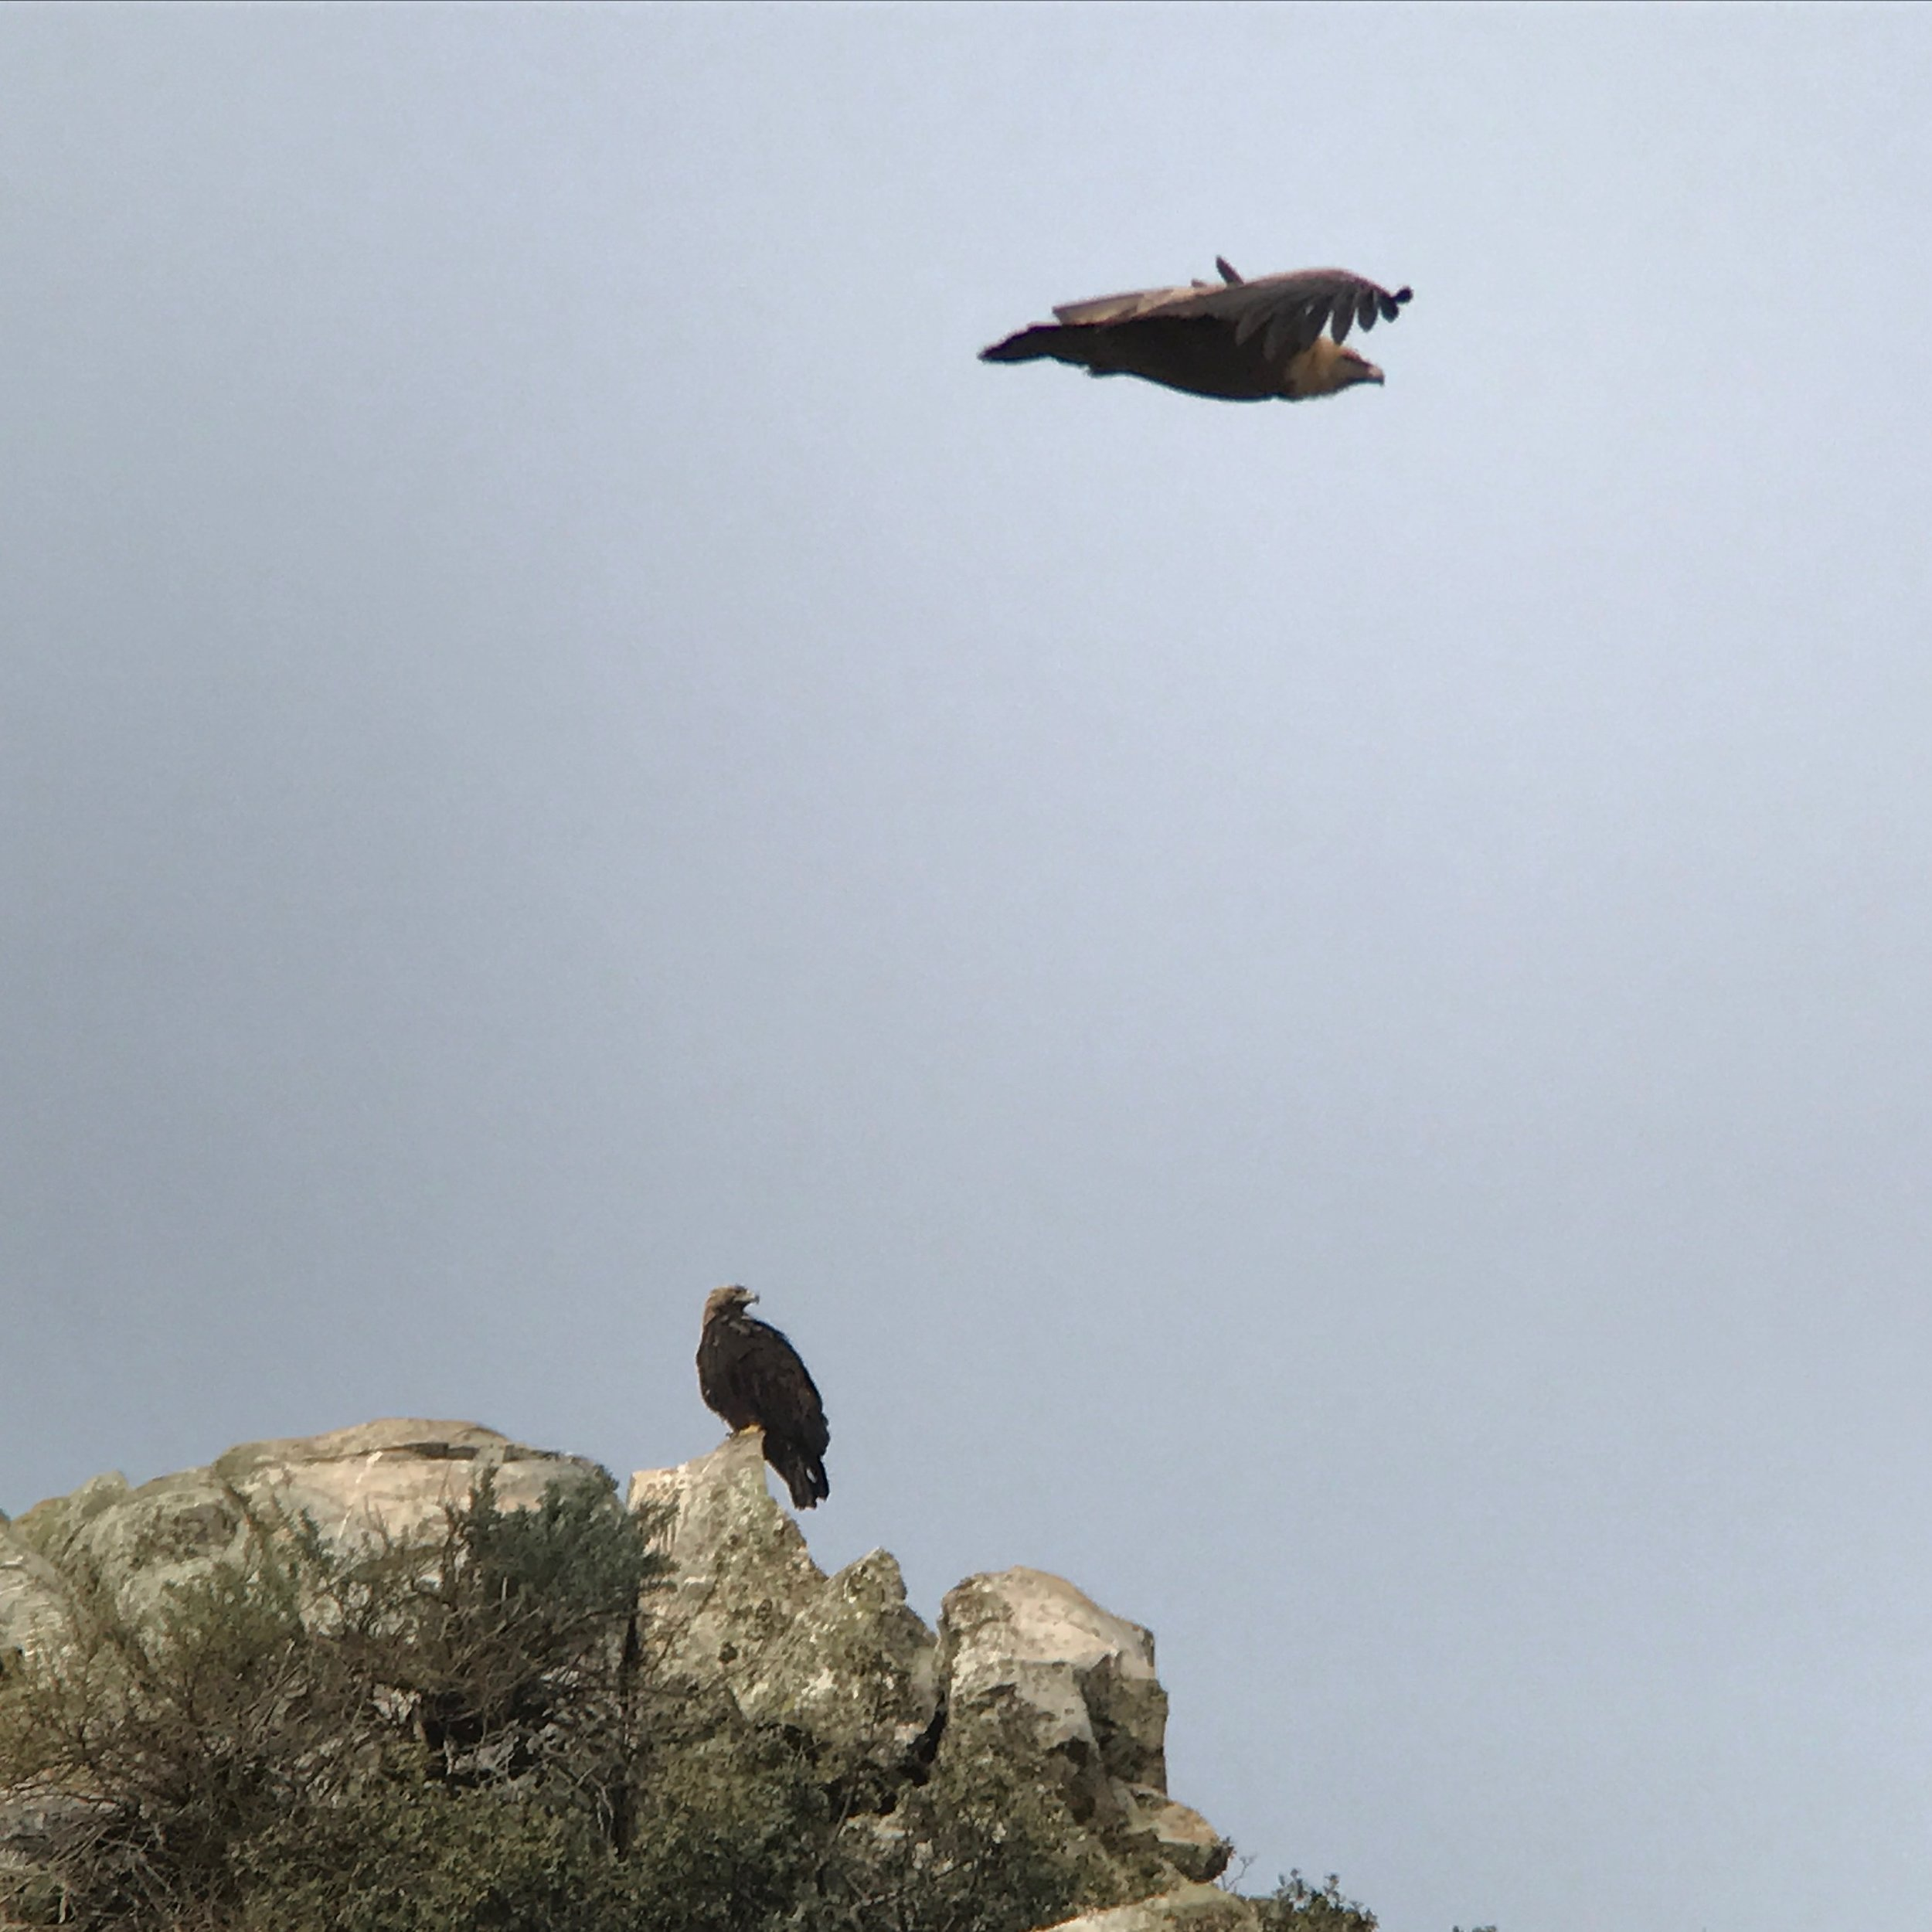 One of the prized species in this region is the Spanish imperial eagle. My picture got photobombed by a griffon vulture.